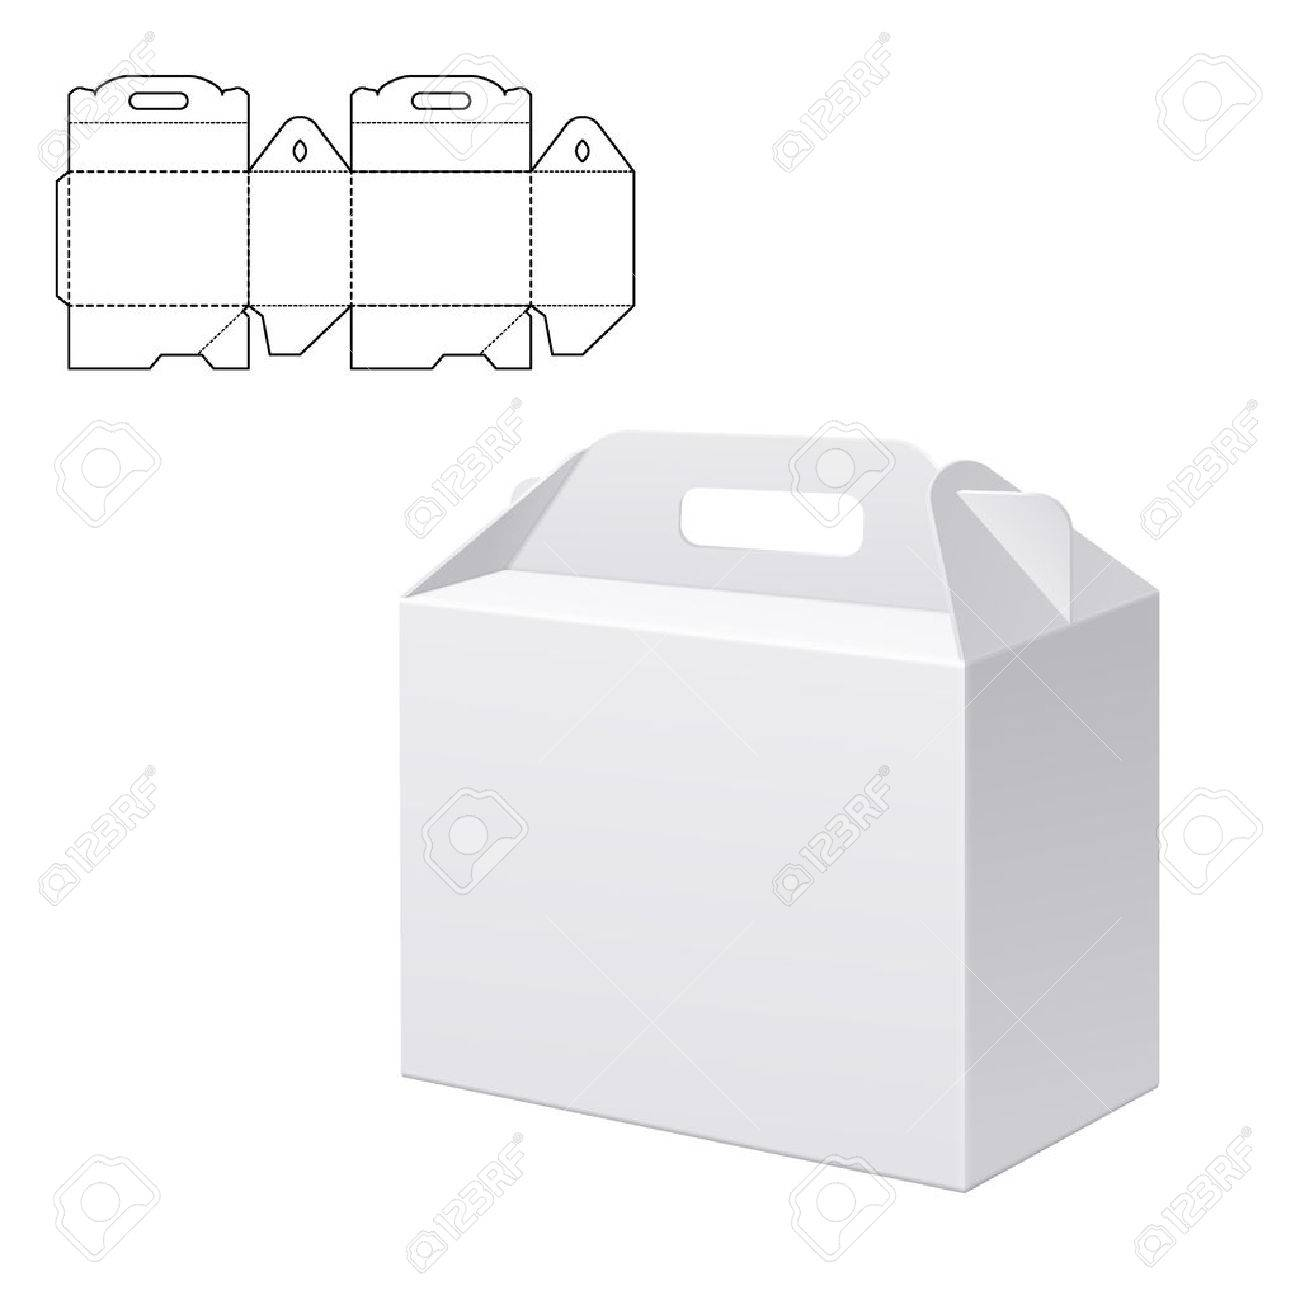 Vector Illustration of Clear Folding Carton Box with diecut for Design Website Background  sc 1 st  123RF Stock Photos & Vector Illustration Of Clear Folding Carton Box With Diecut For ... Aboutintivar.Com